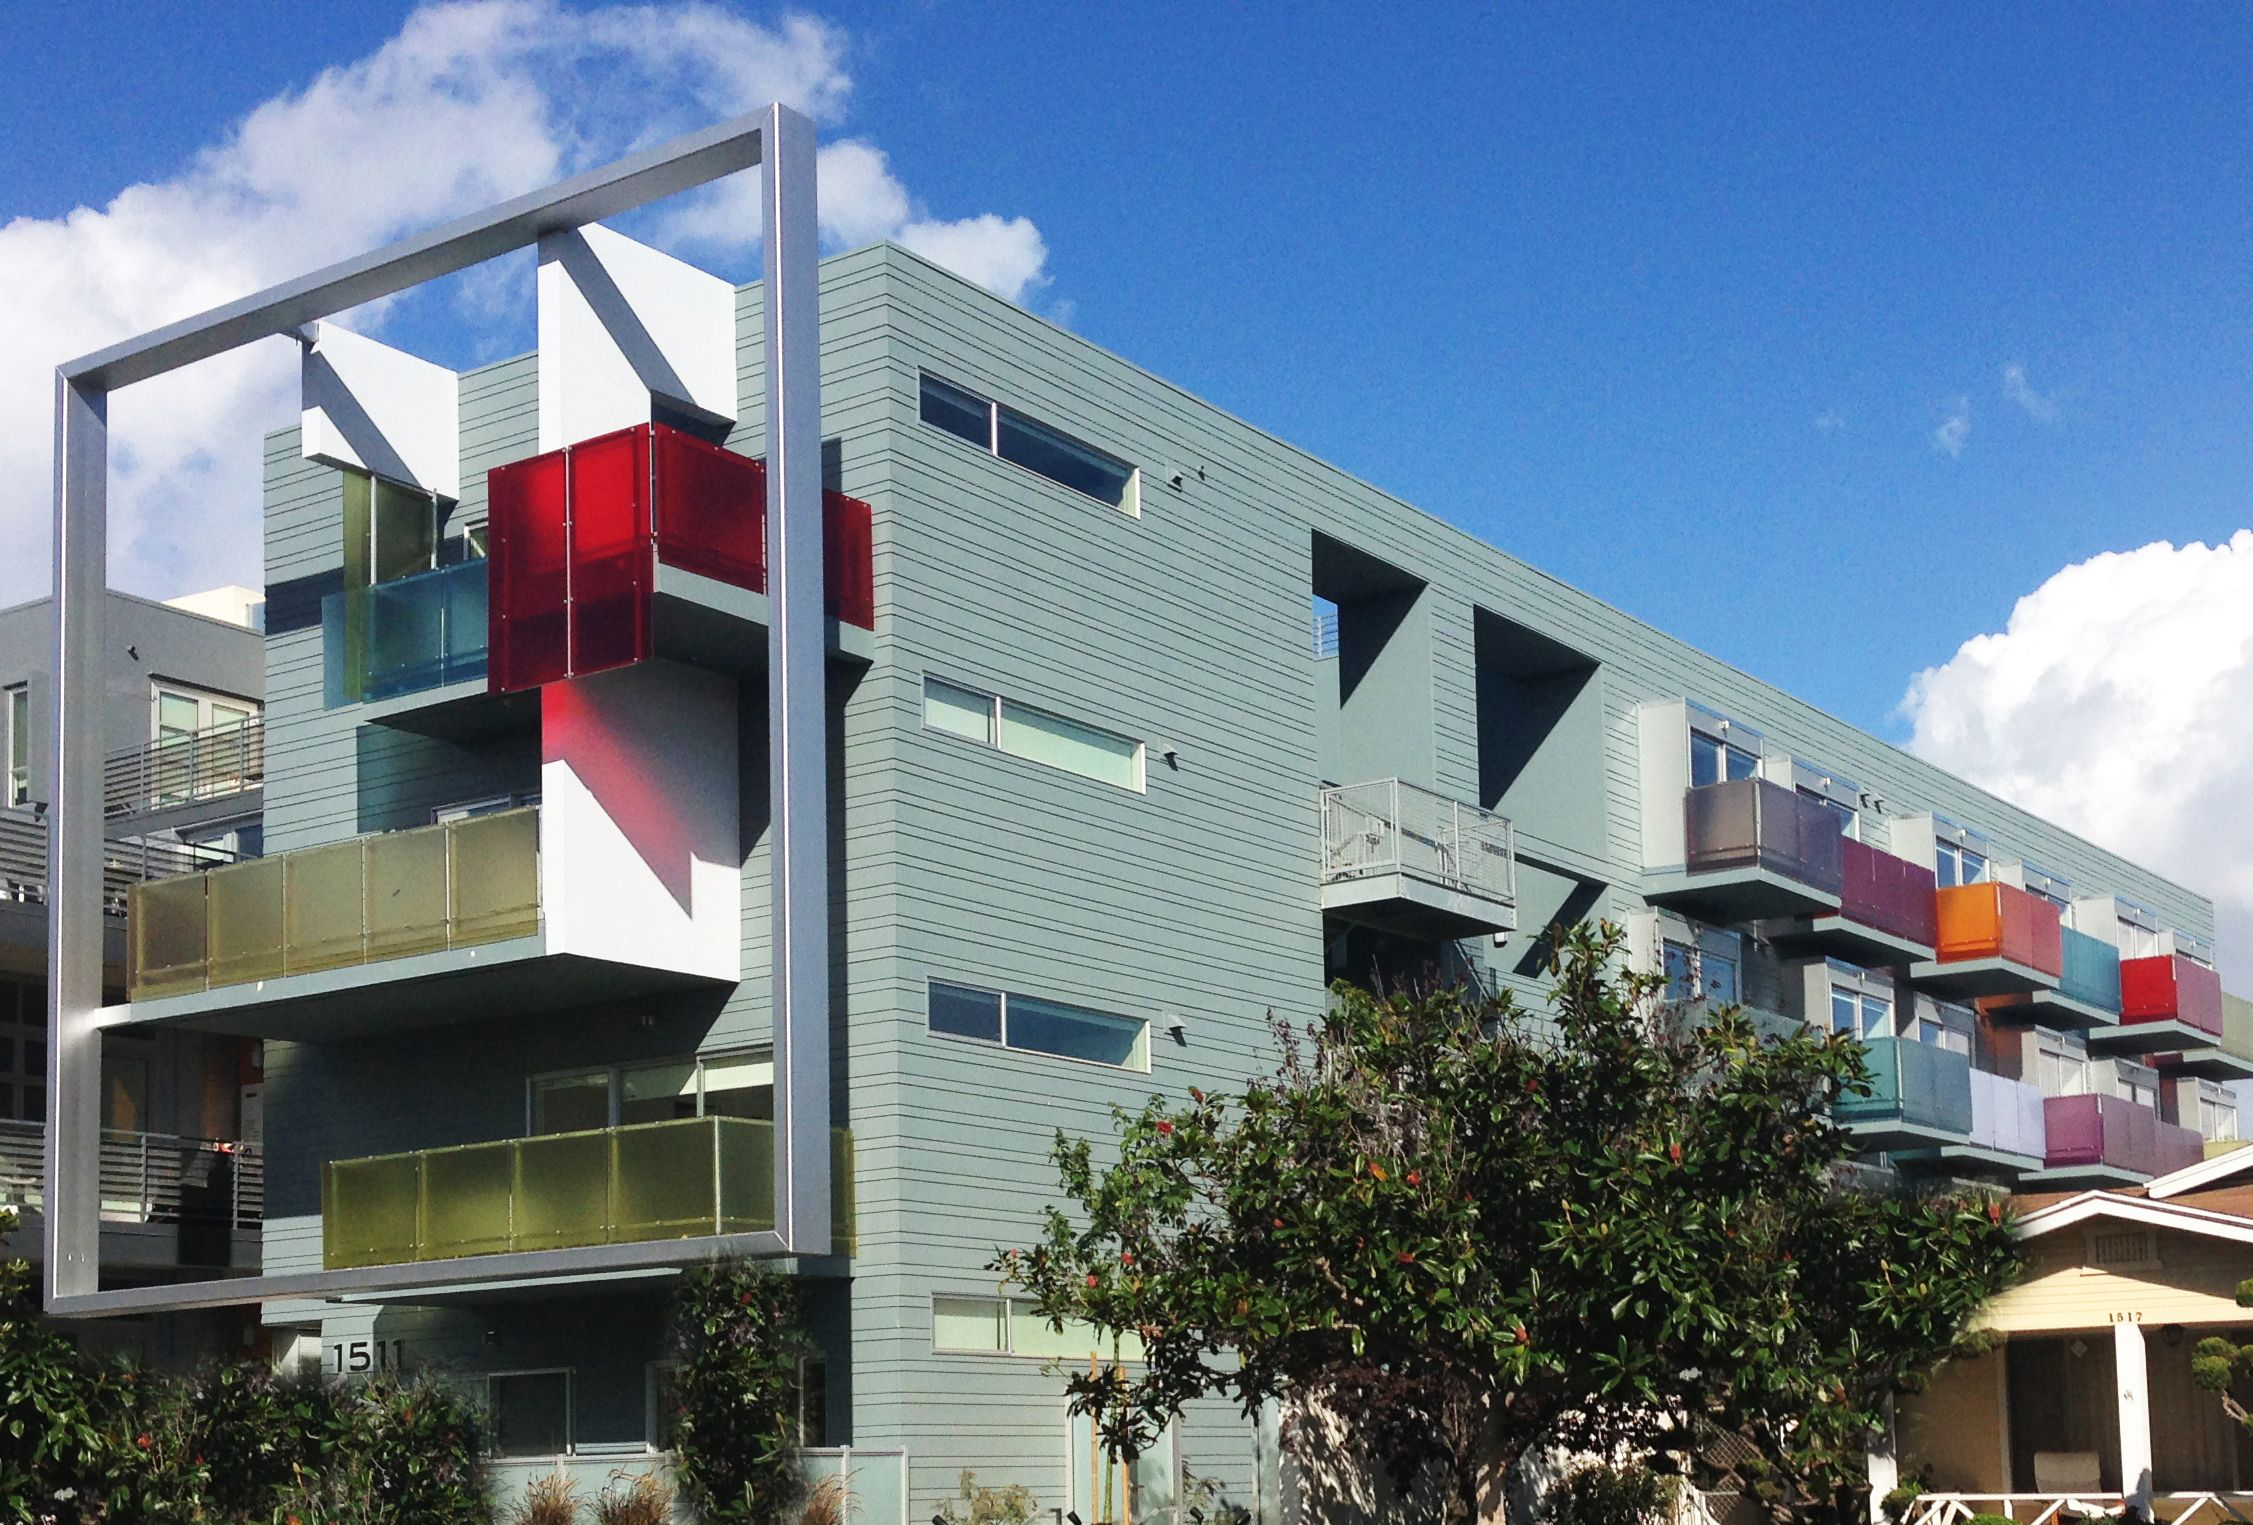 Modern Architectural Apartment Building In Santamonica Apartments Rent